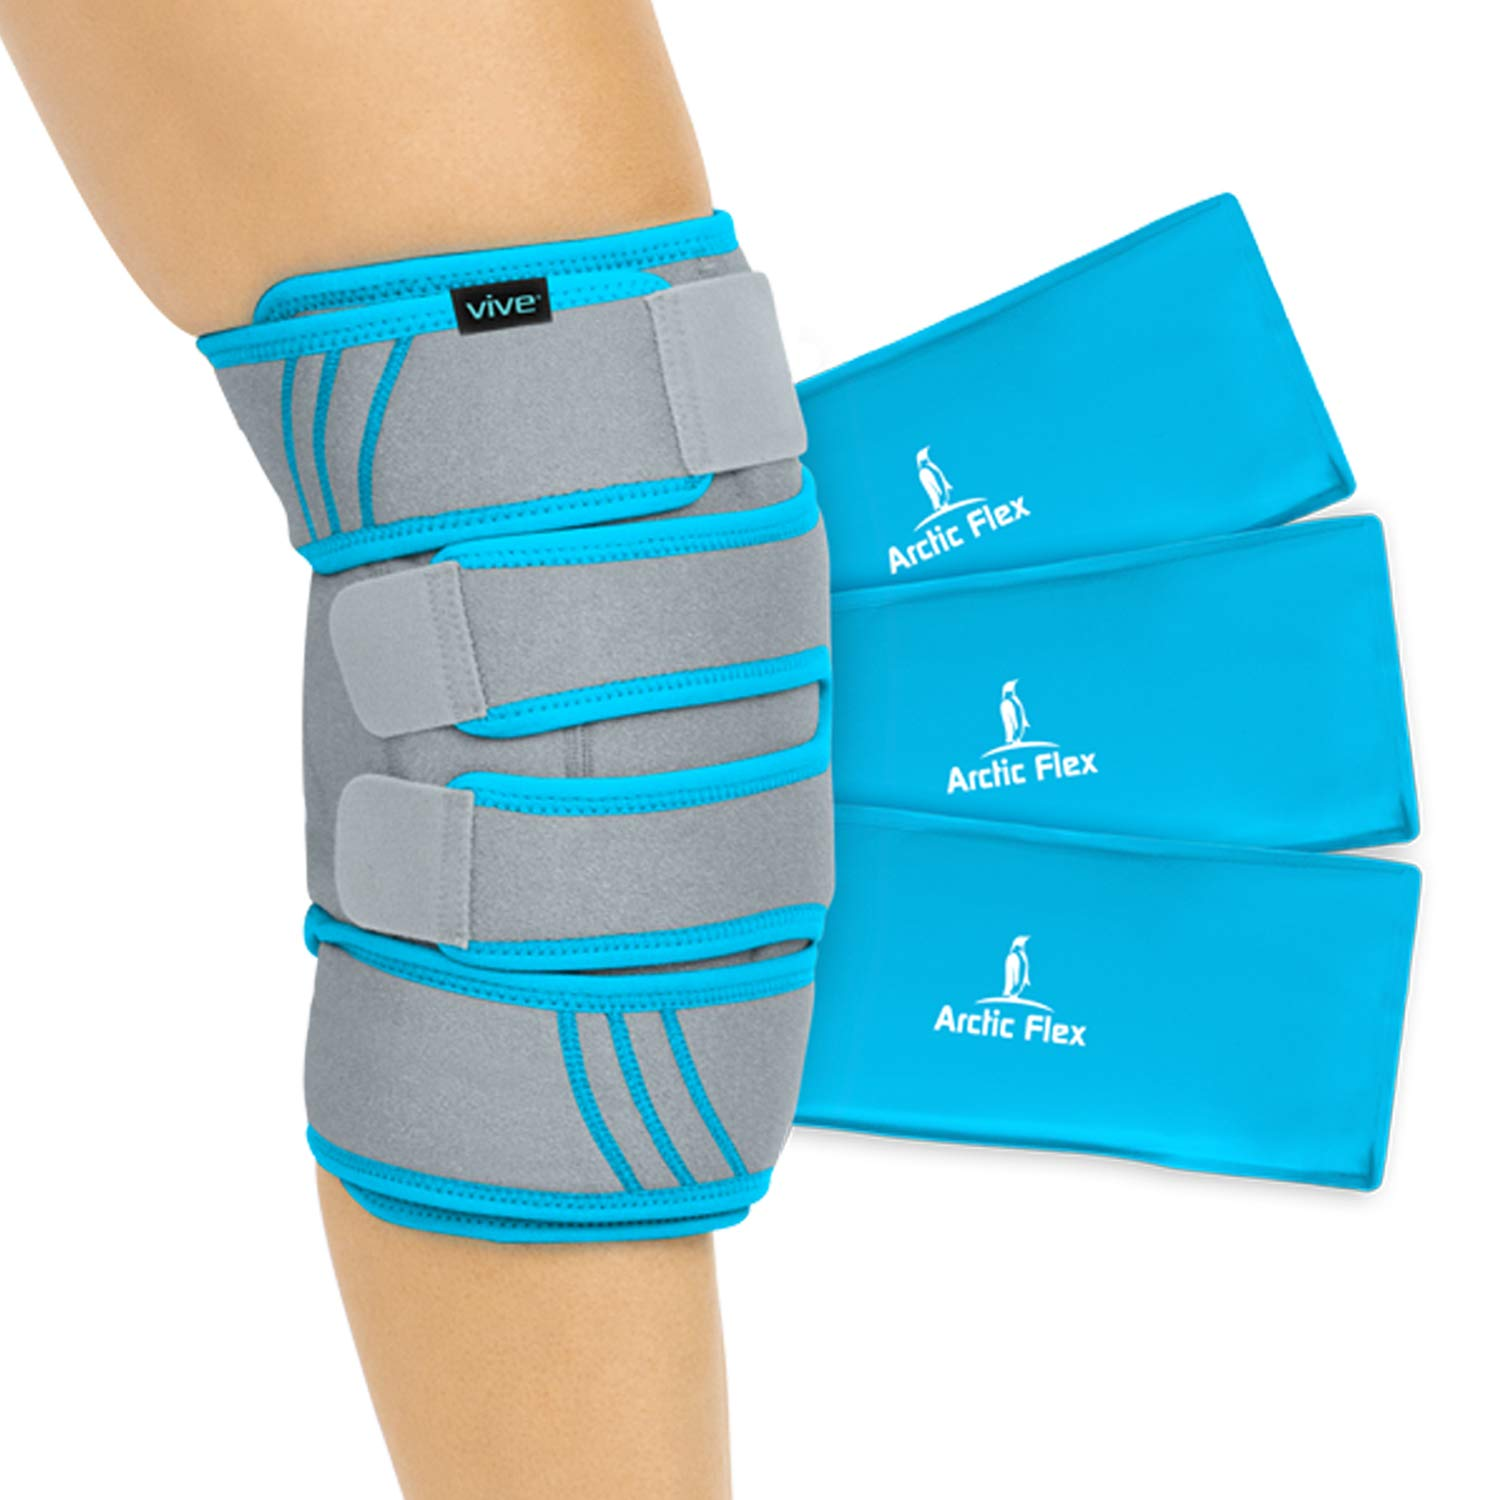 Vive Knee Ice Pack Wrap - Cold/Hot Gel Compression Brace